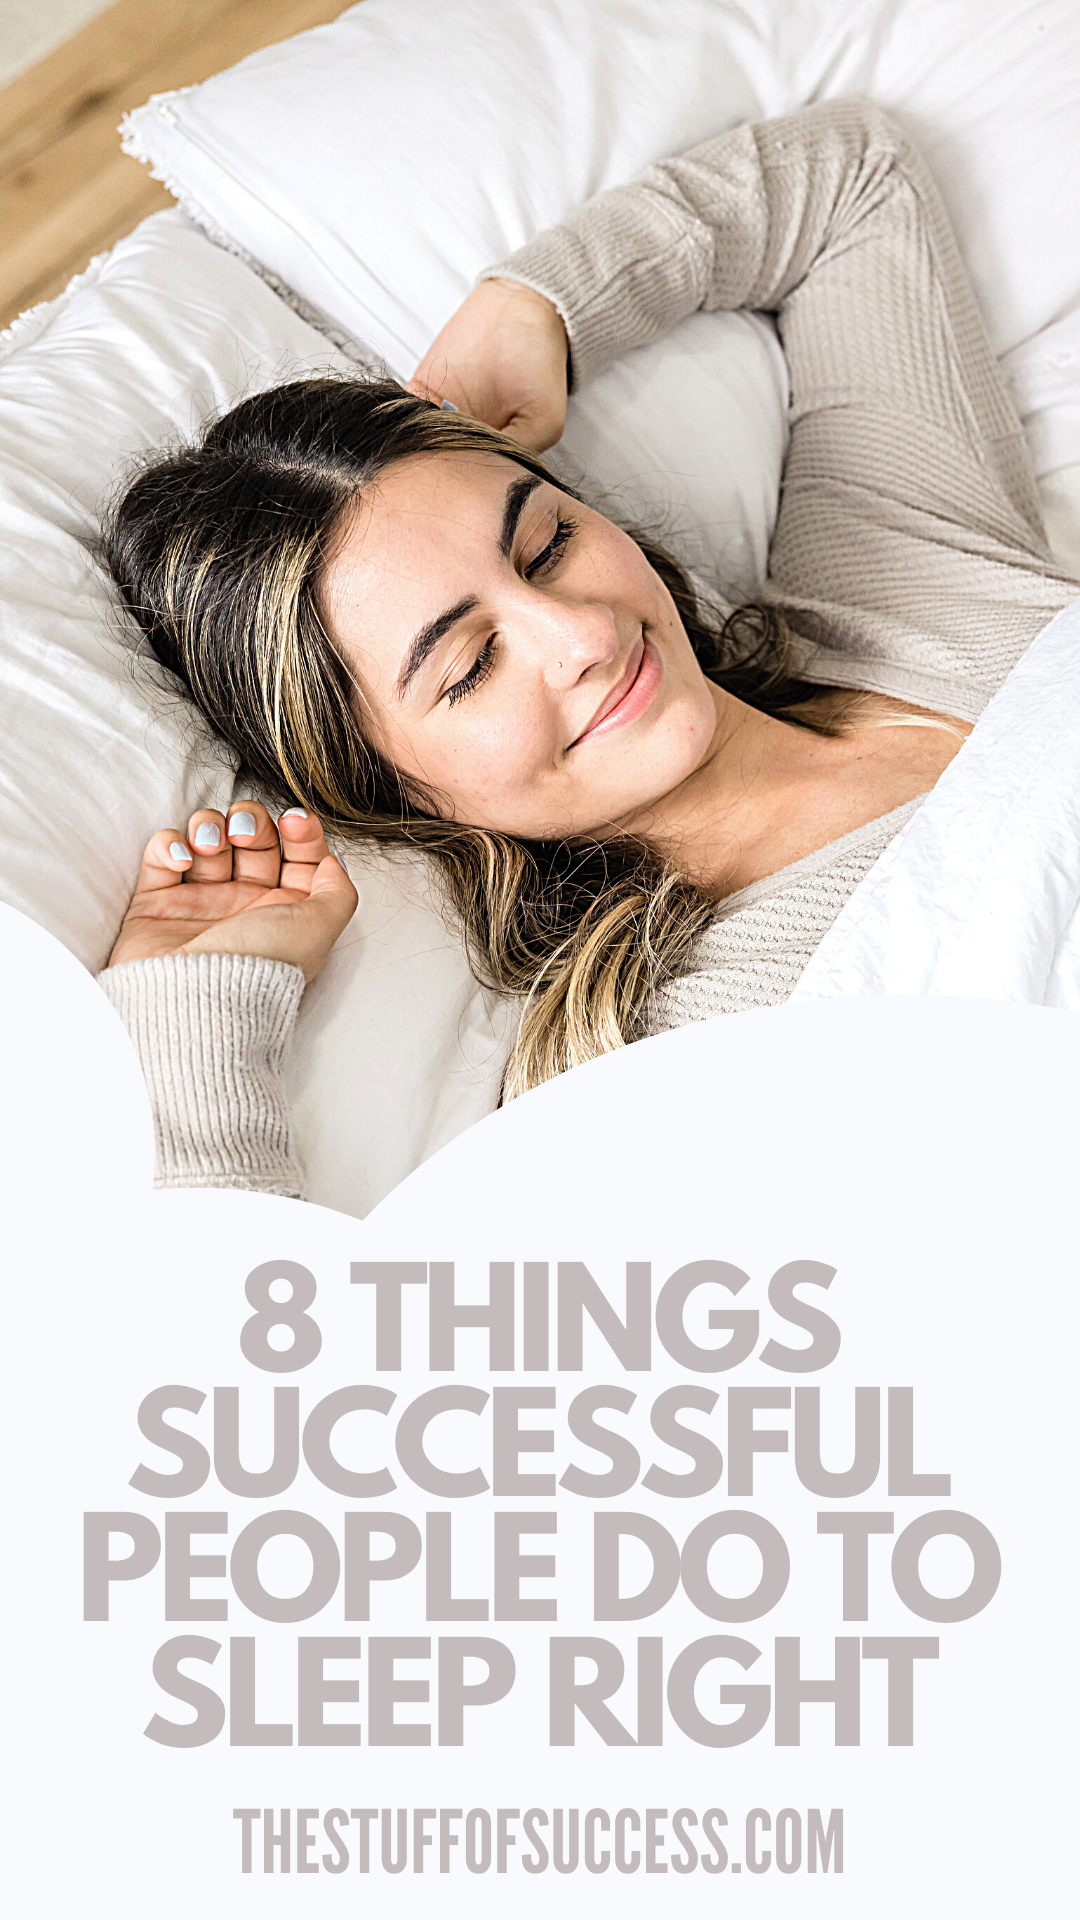 8 Things Successful People Do To Sleep Right